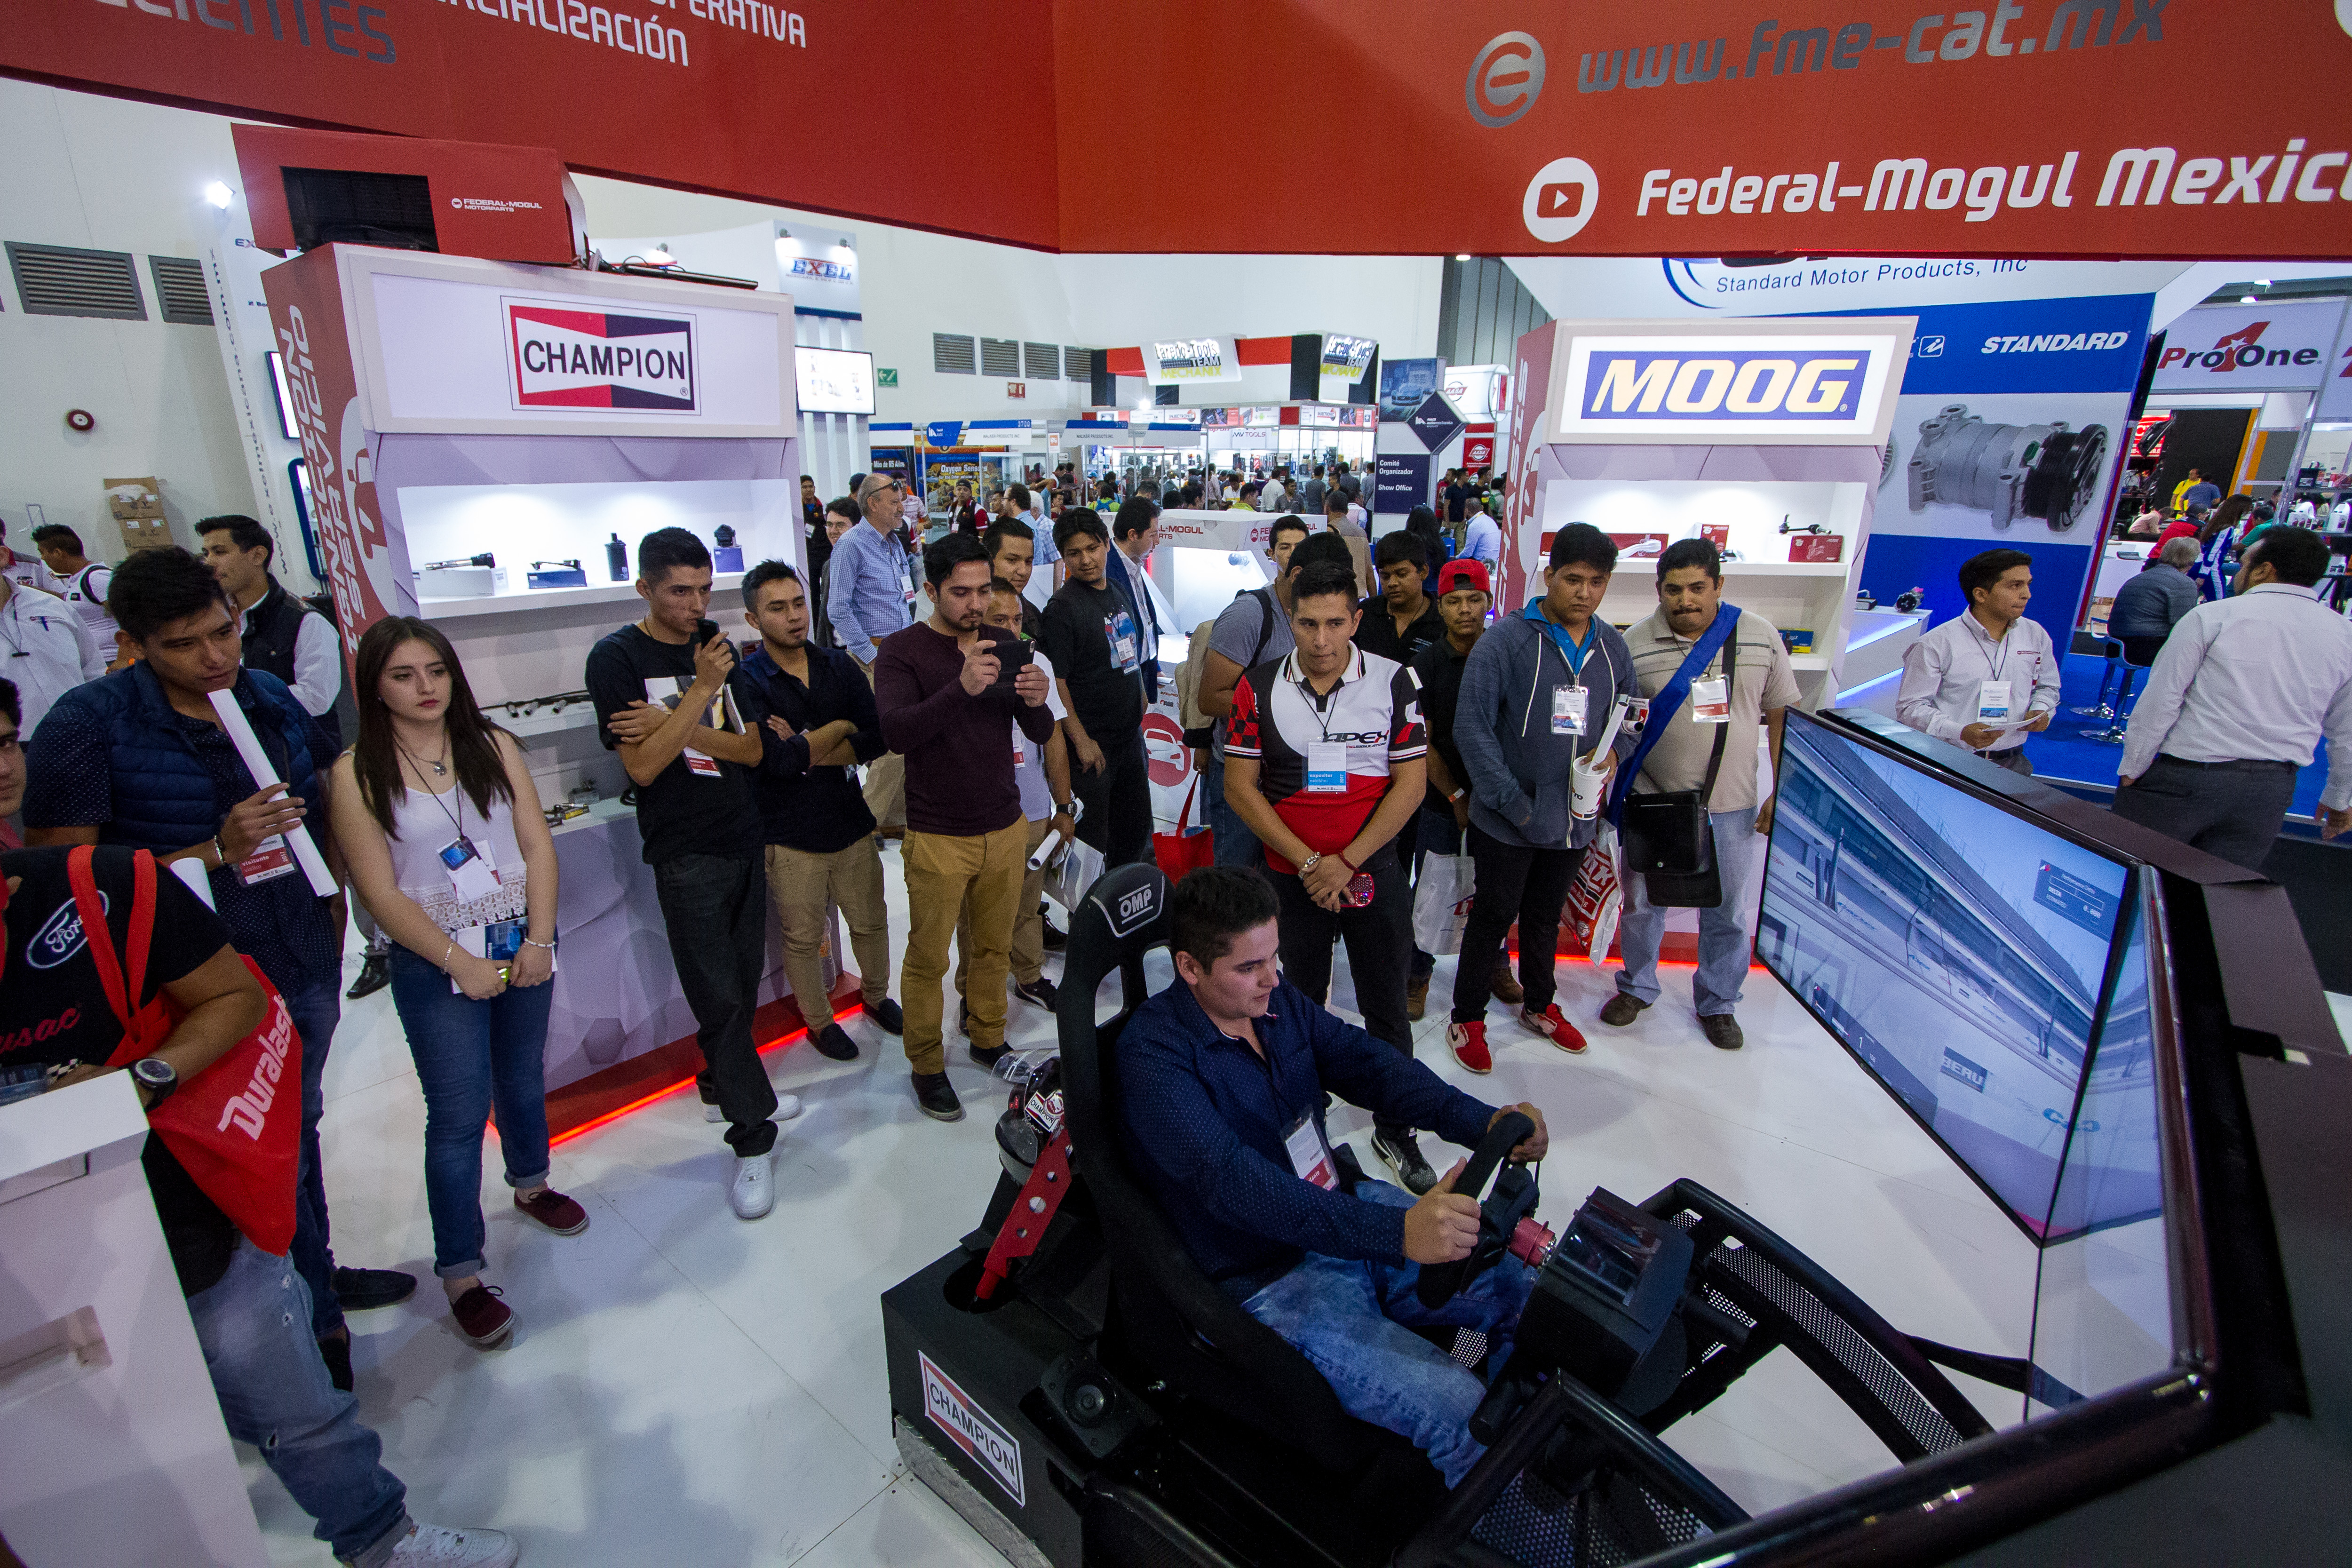 INA PAACE Automechanika Mexico City 2020 - Sponsorships